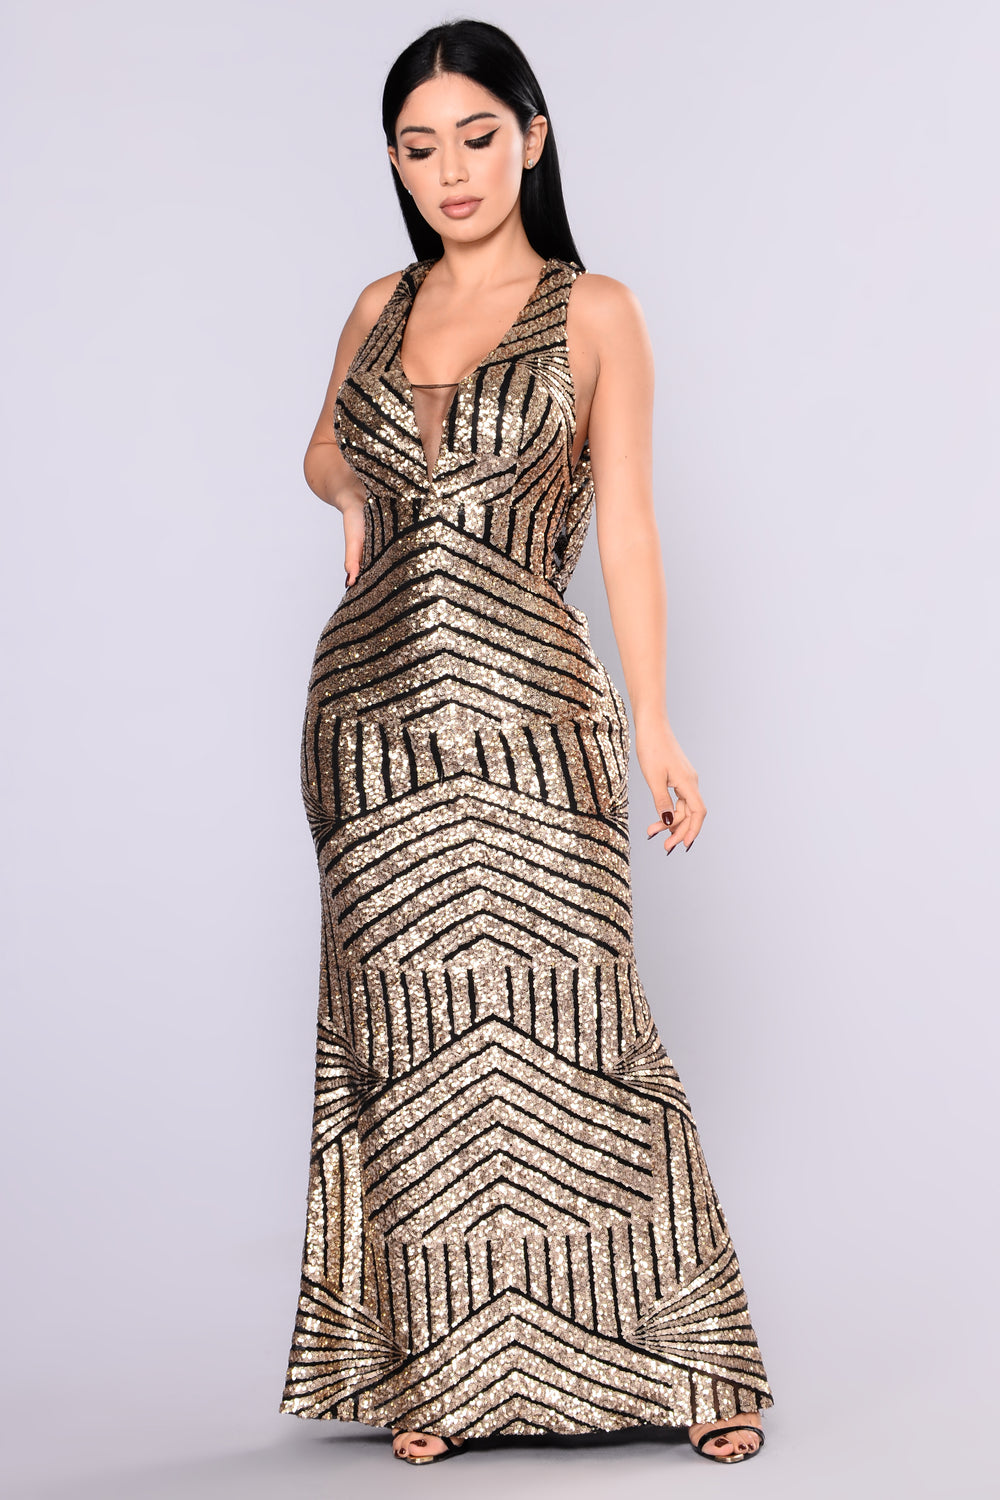 Milan Runway Sequin Dress - Black/Gold